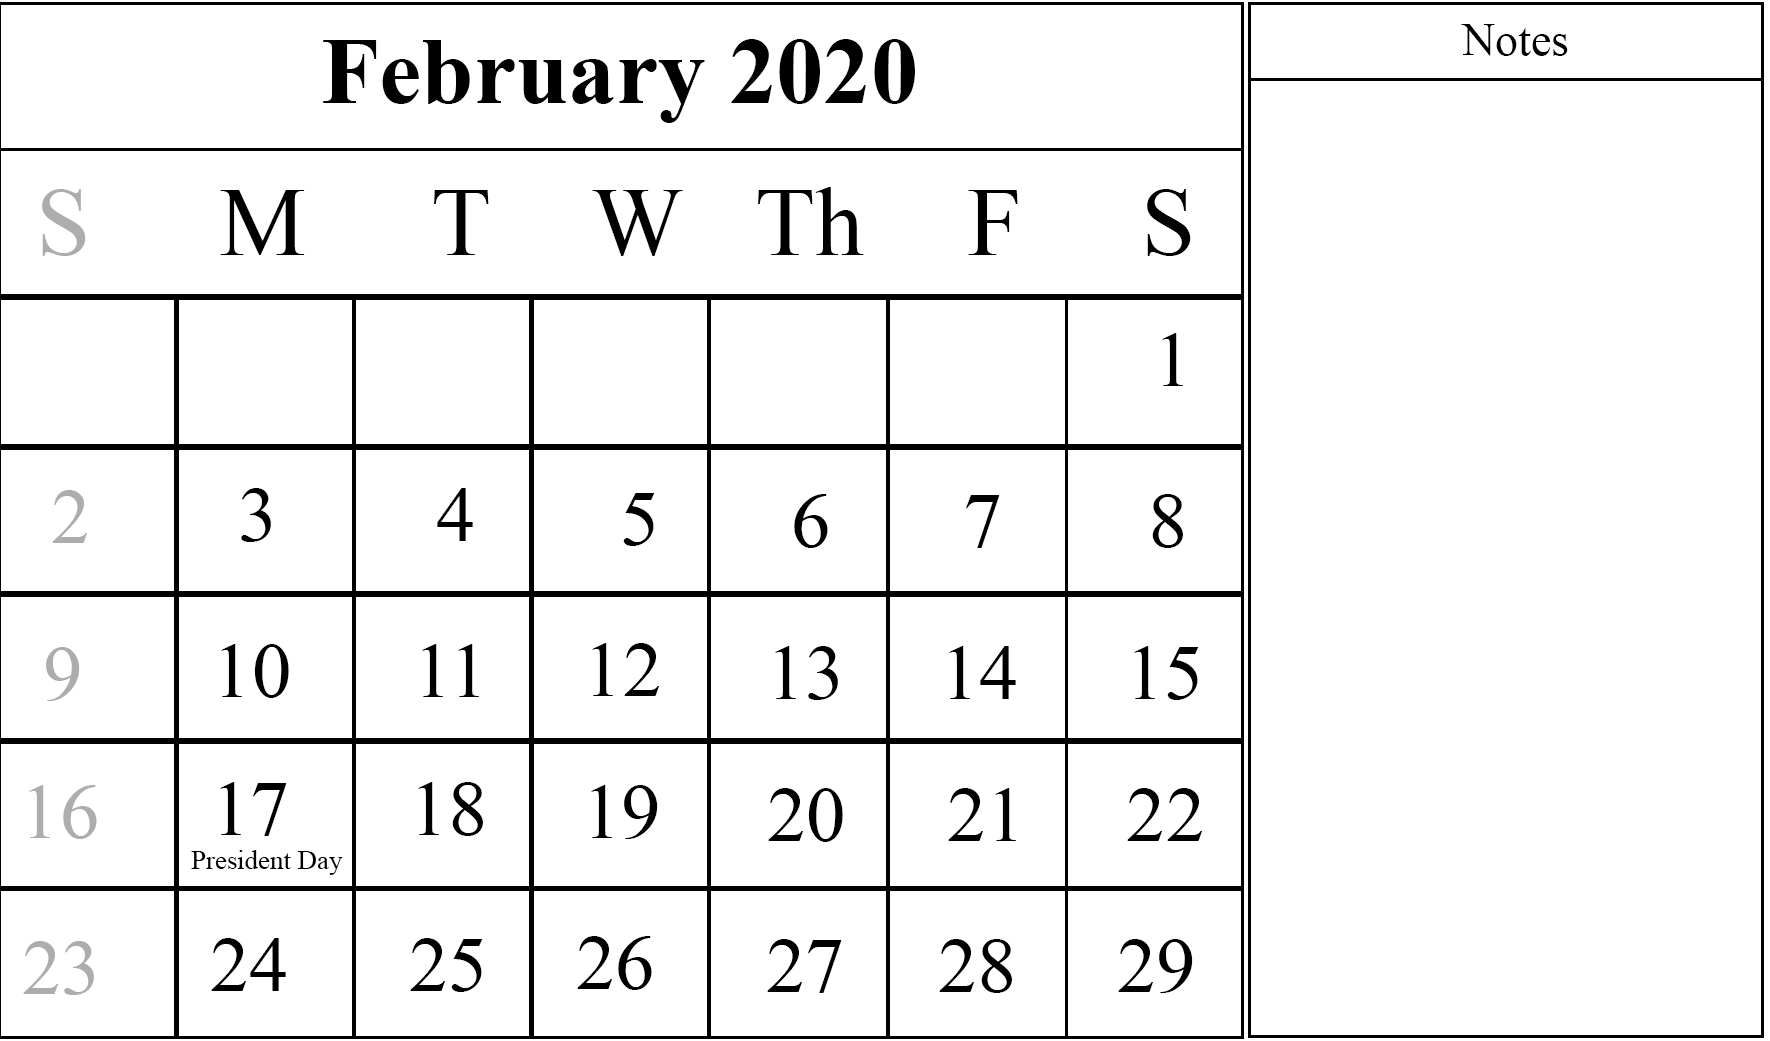 February 2020 Calendar Template With Notes